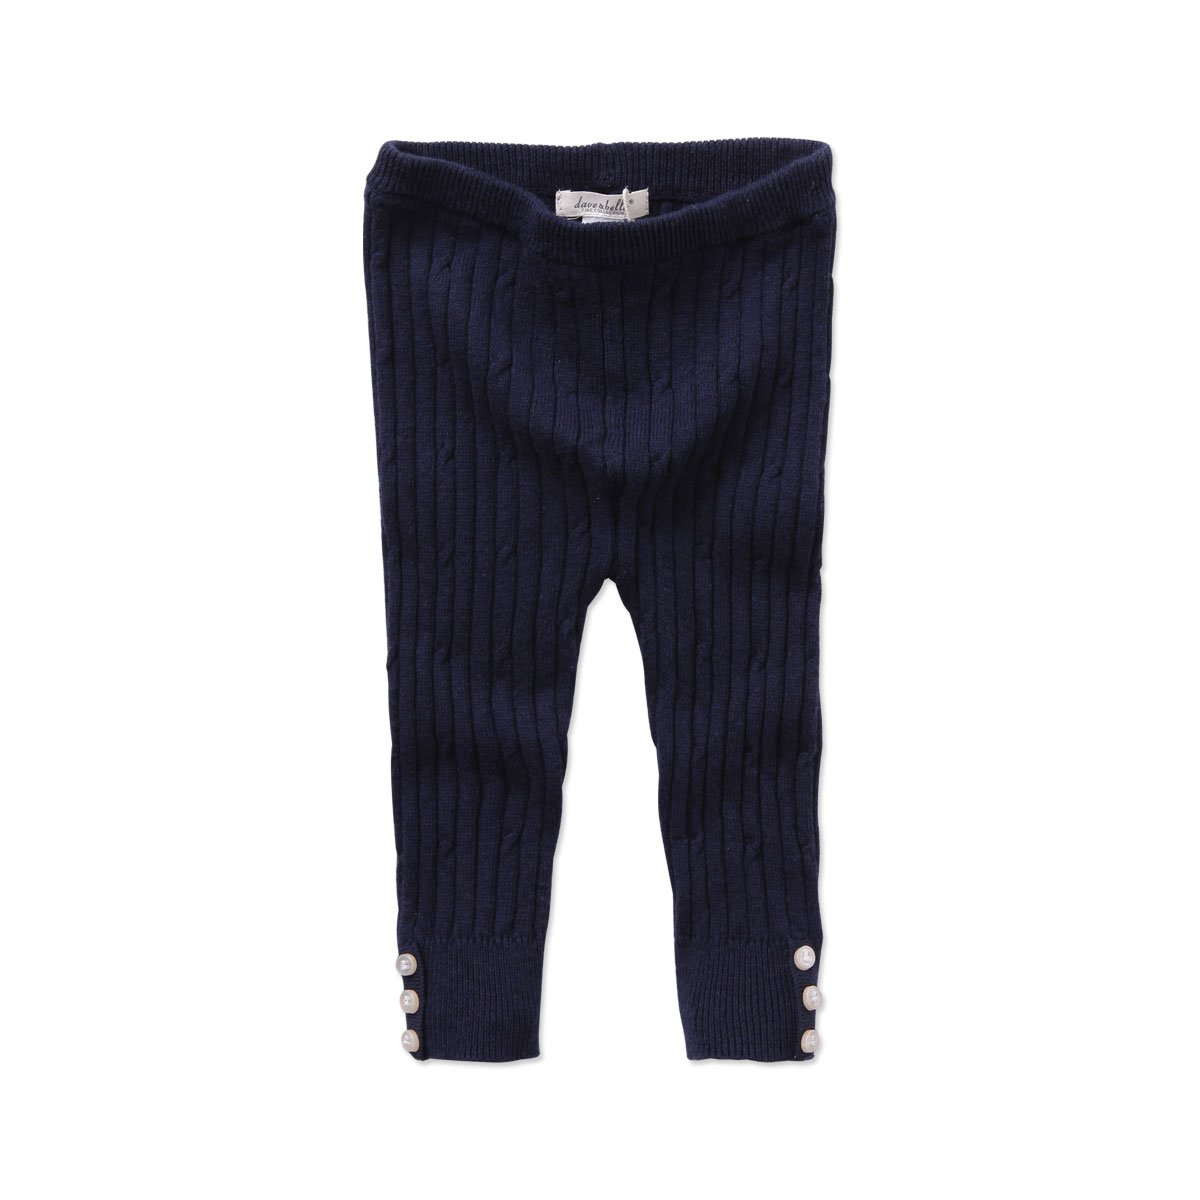 Kids N Color Baby Navy Knit Pants with Cable Design